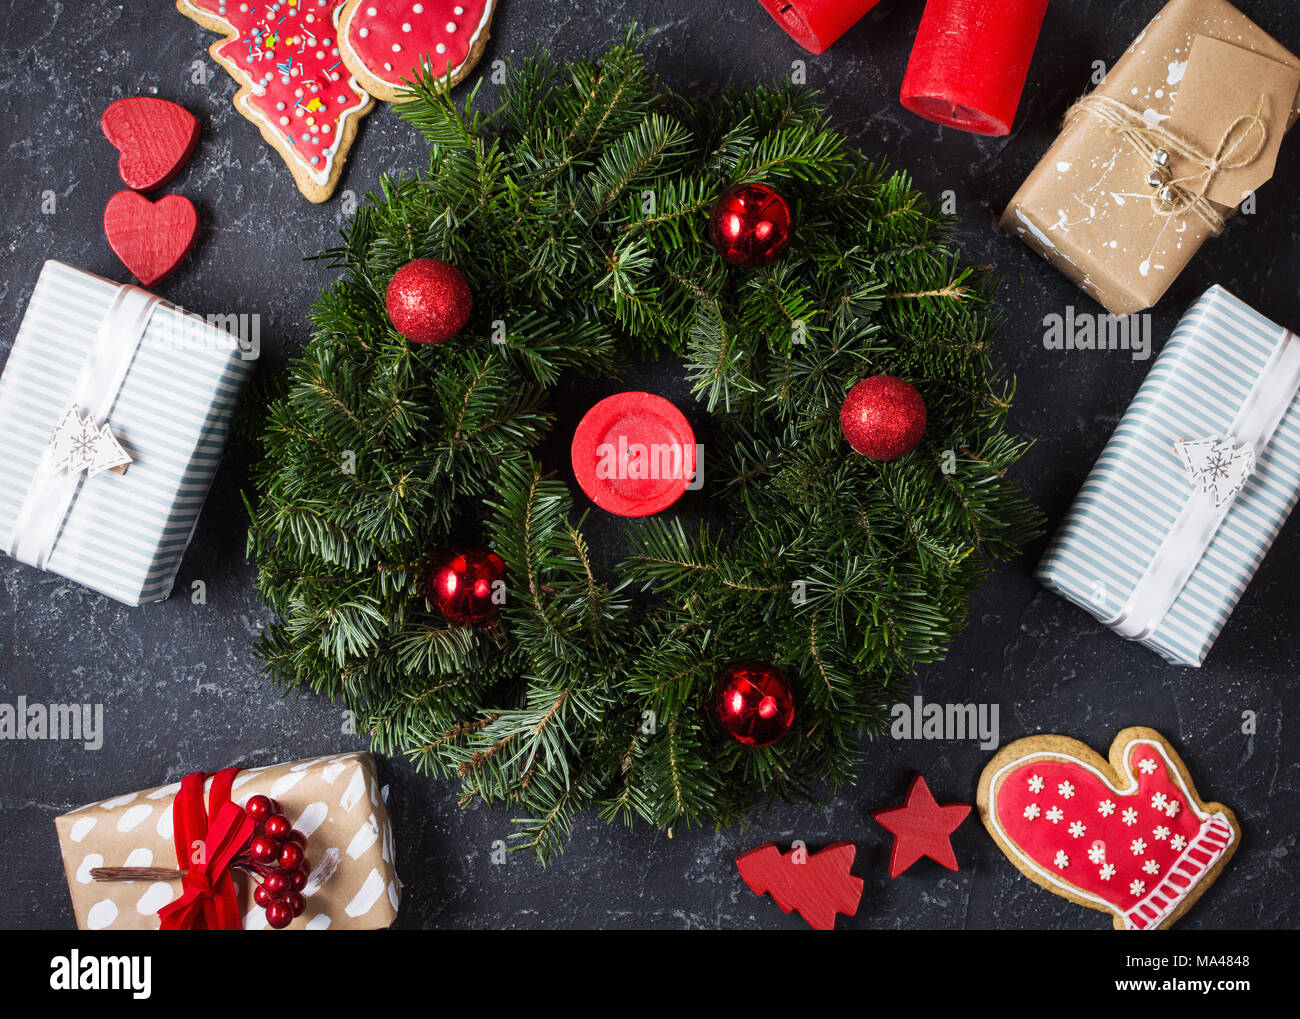 Christmas wreath and Christmas gifts on a black stone surface. Top ...